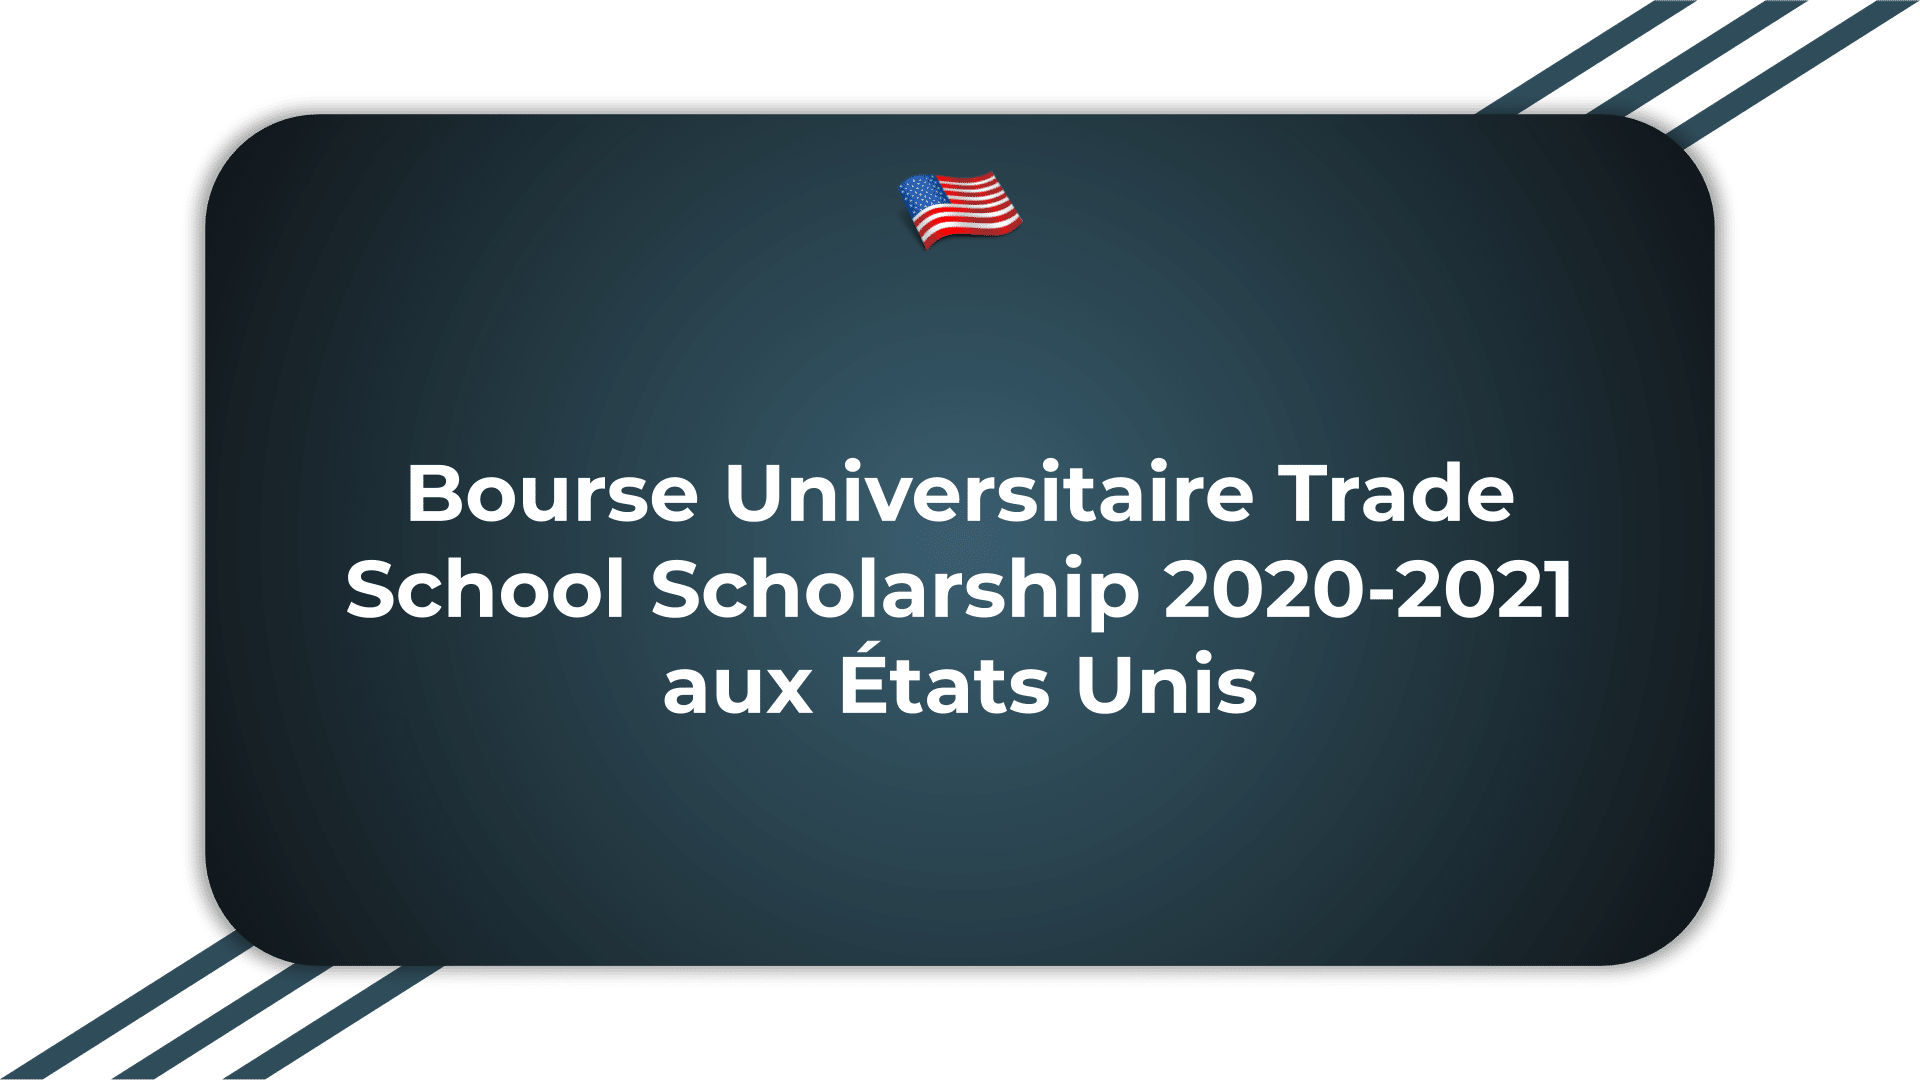 Bourse Universitaire Trade School Scholarship